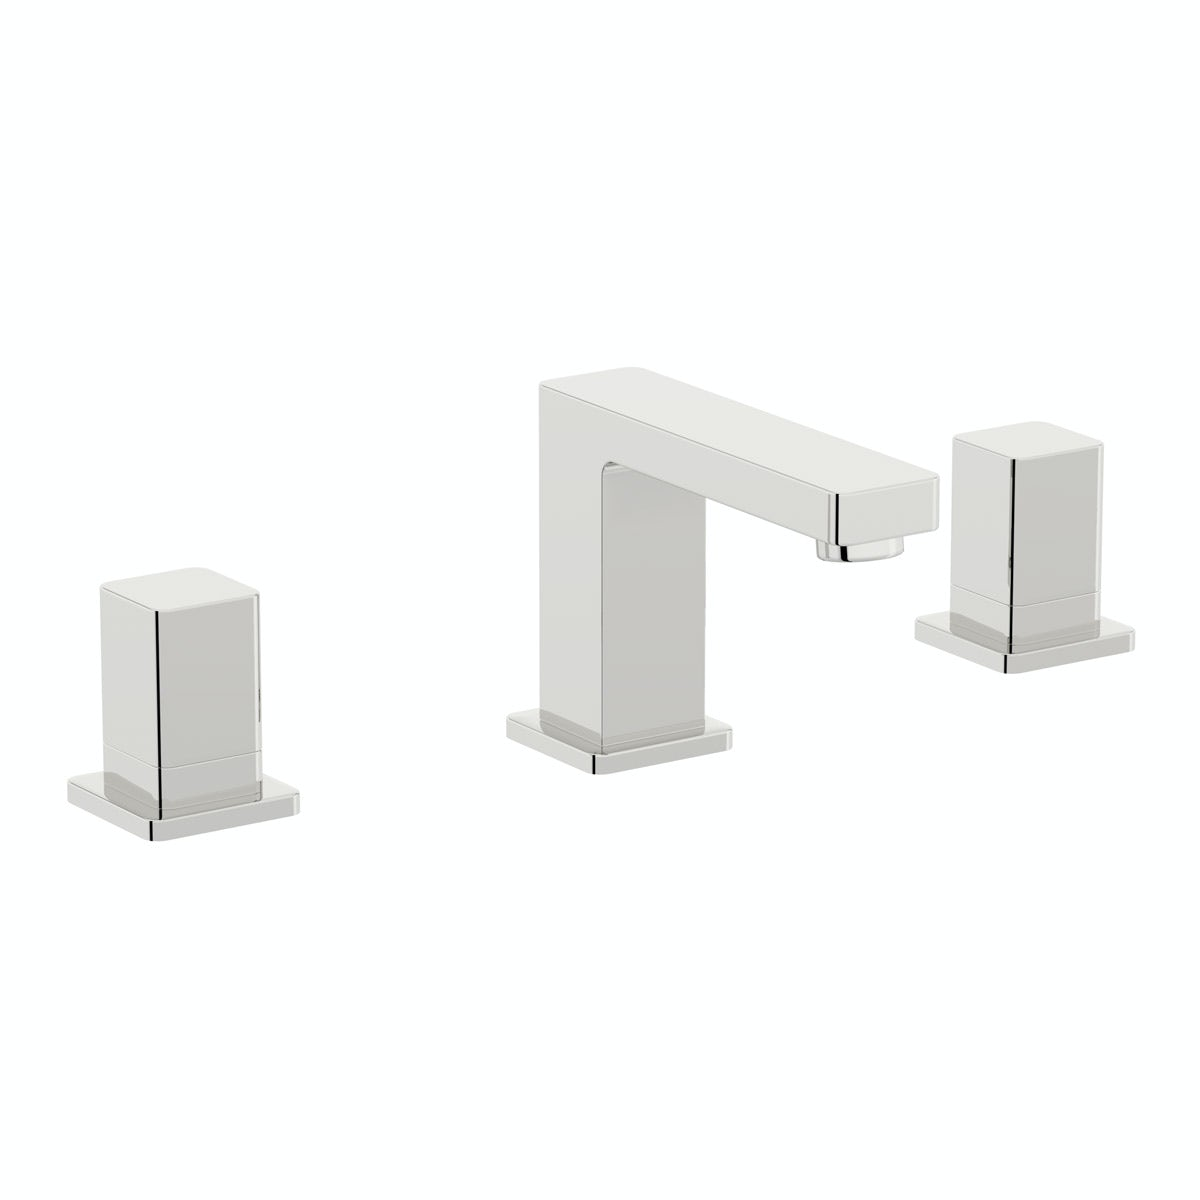 Mode Austin 3 hole basin mixer tap offer pack